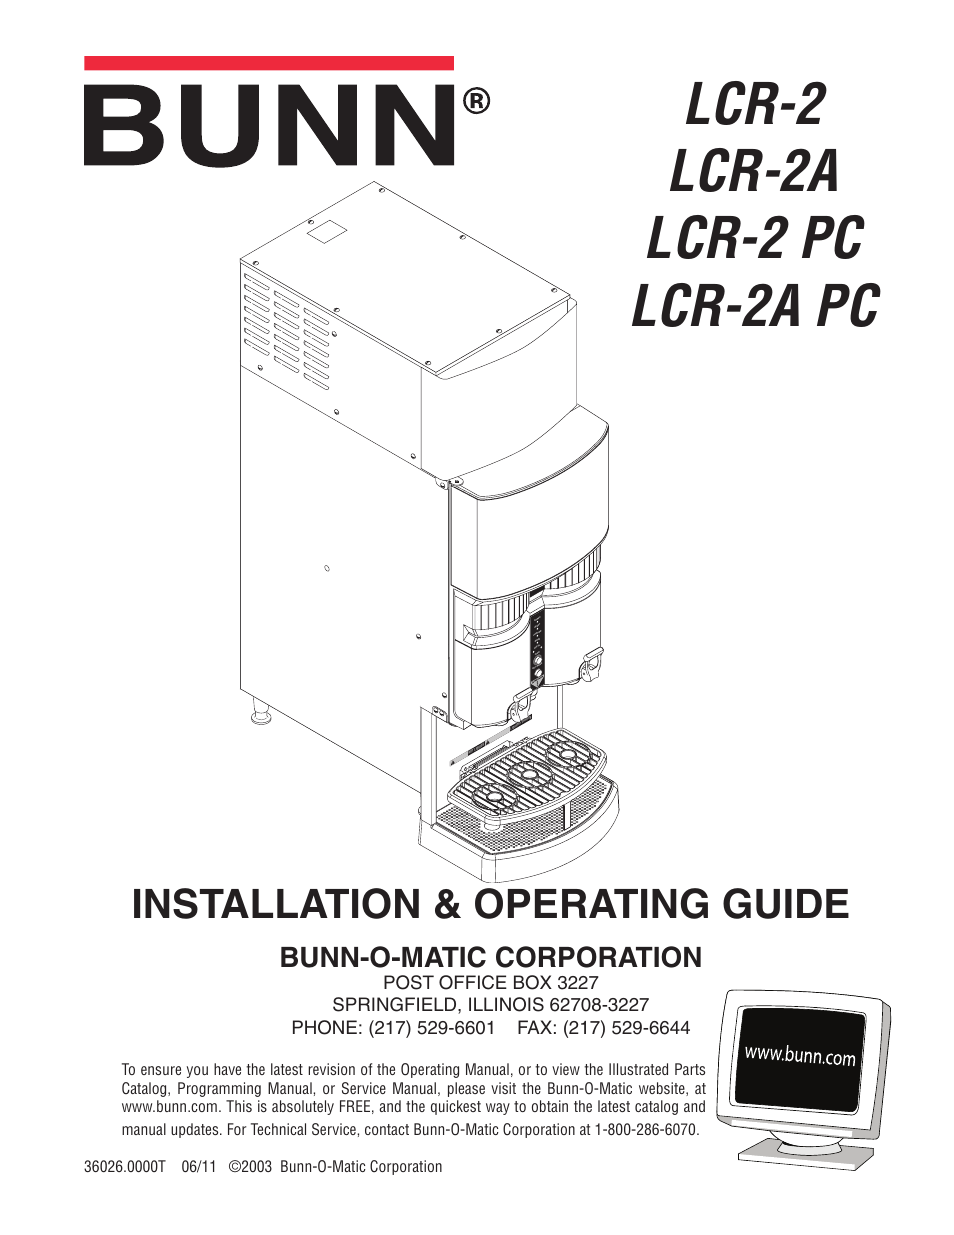 Bunn Model Bx Wiring Diagram Library Brew Phase Electric Brewing System Lcr 2 User Manual 36 Pages